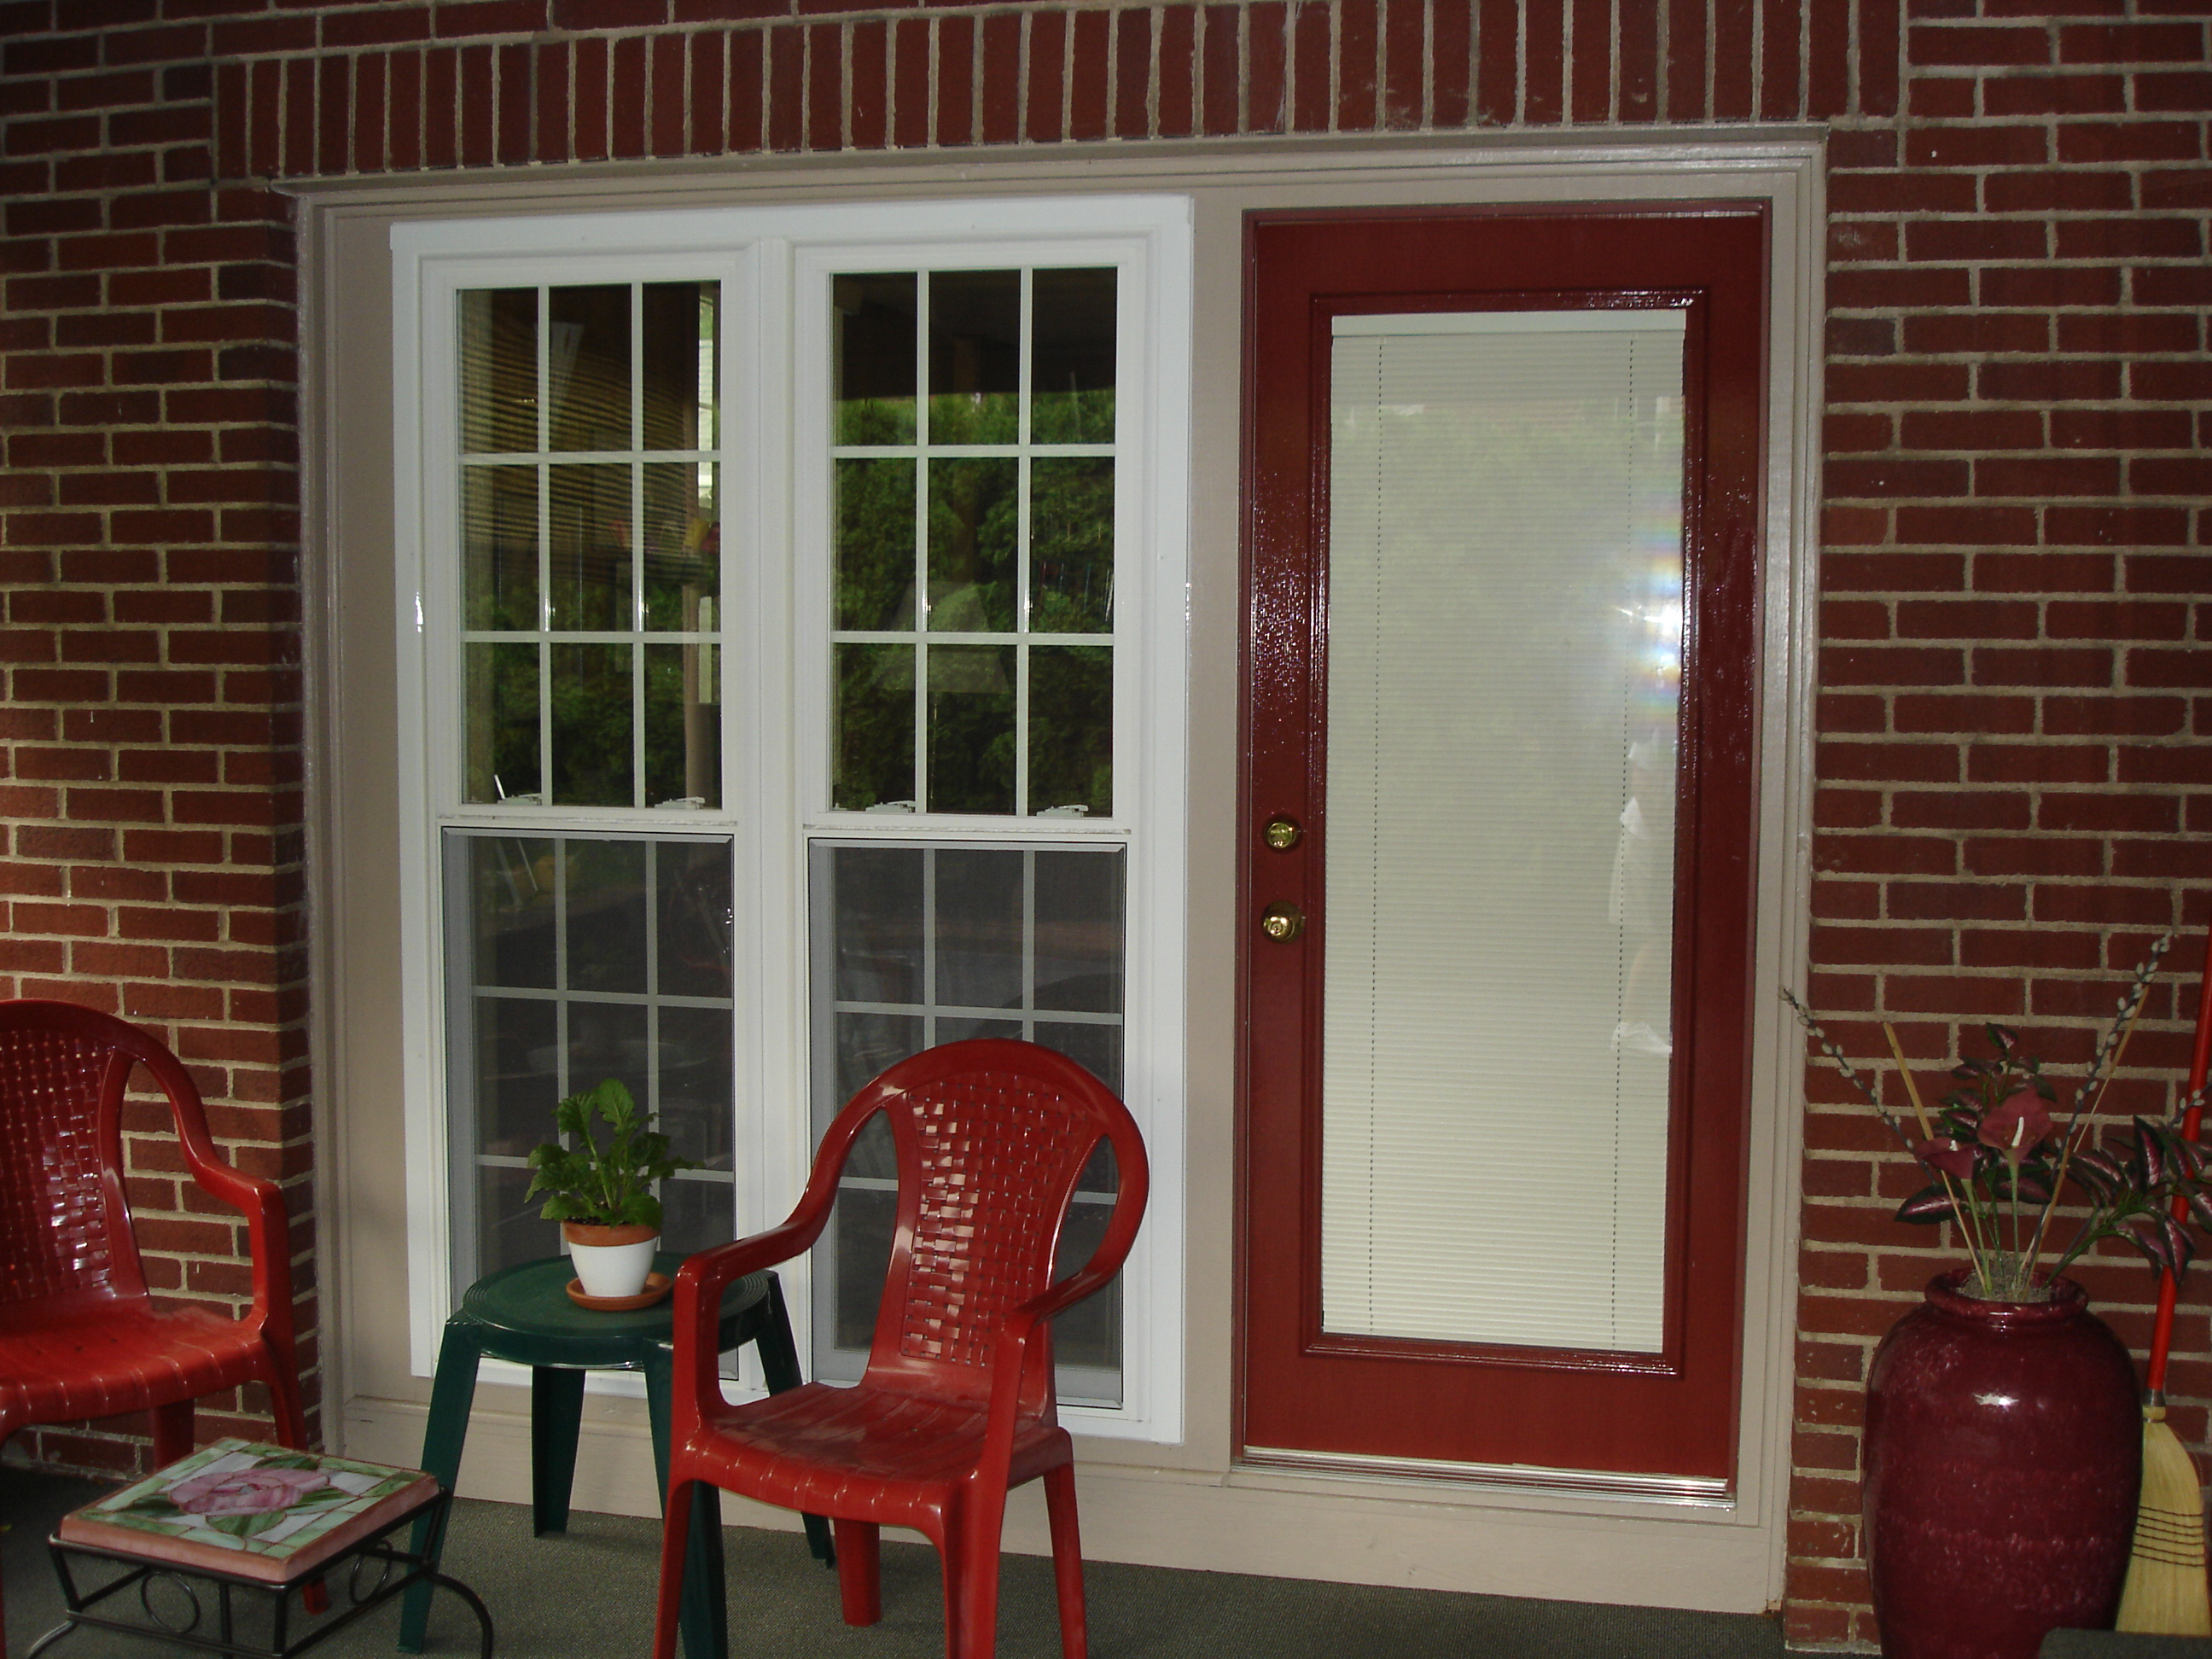 1944 #653227 Exterior Of New Door With Internal Blinds Lowered.jpg?t=1421946429896 picture/photo New Entry Doors 39392592